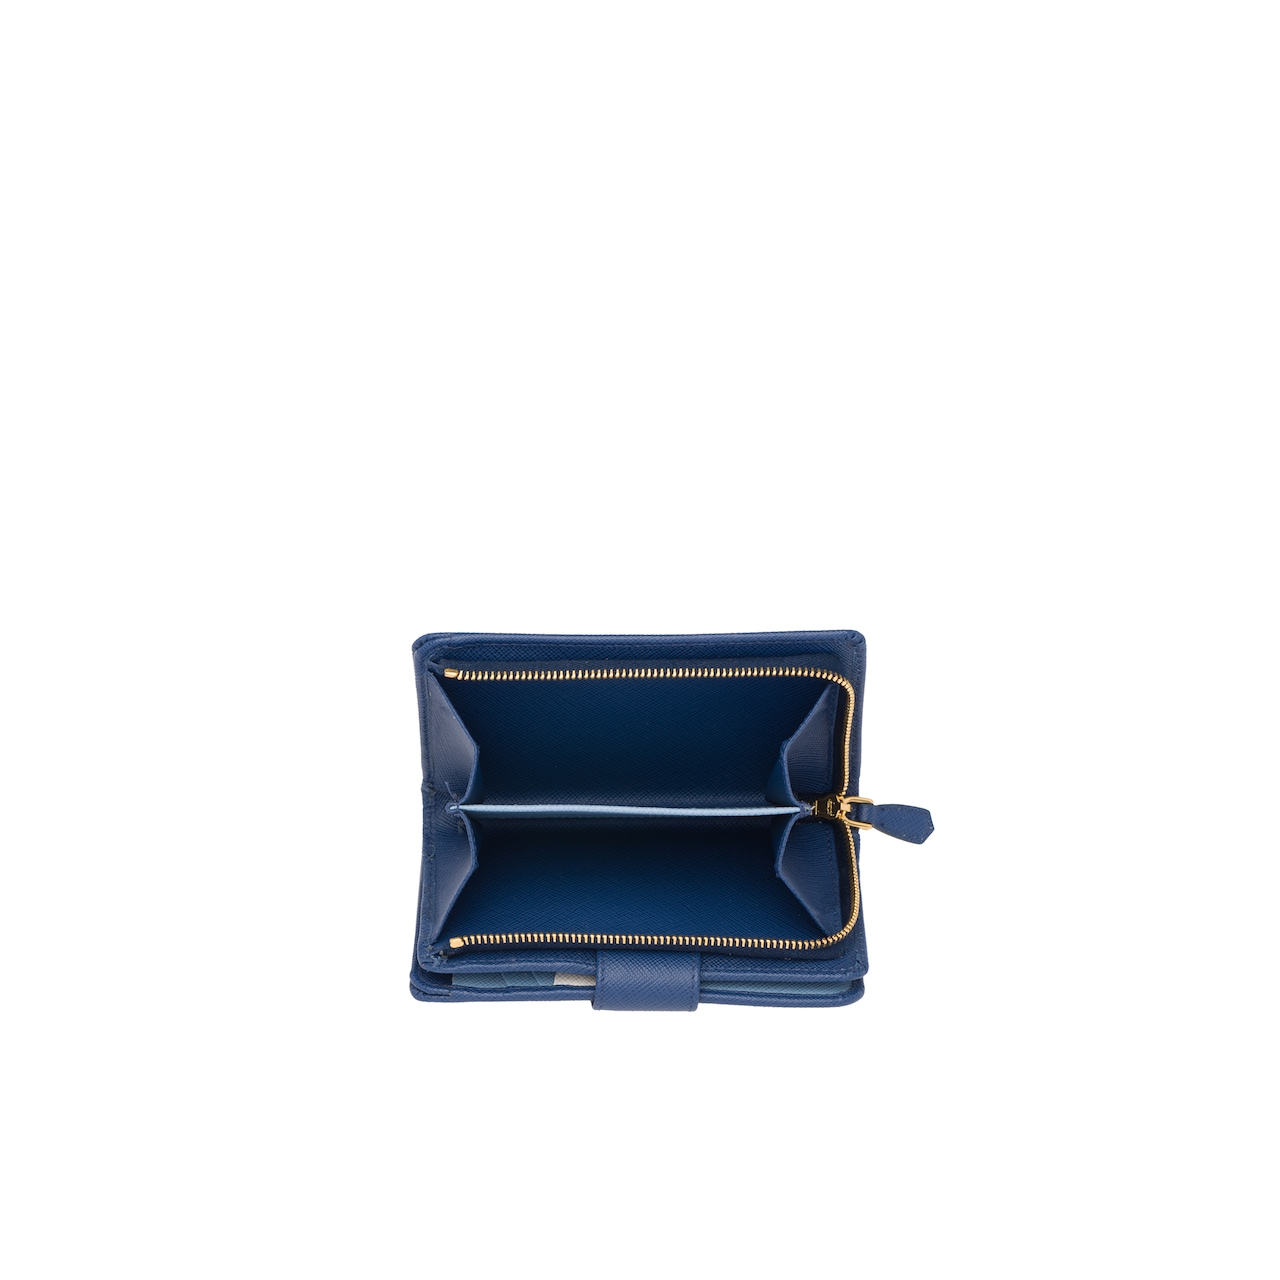 Medium Saffiano Leather Wallet